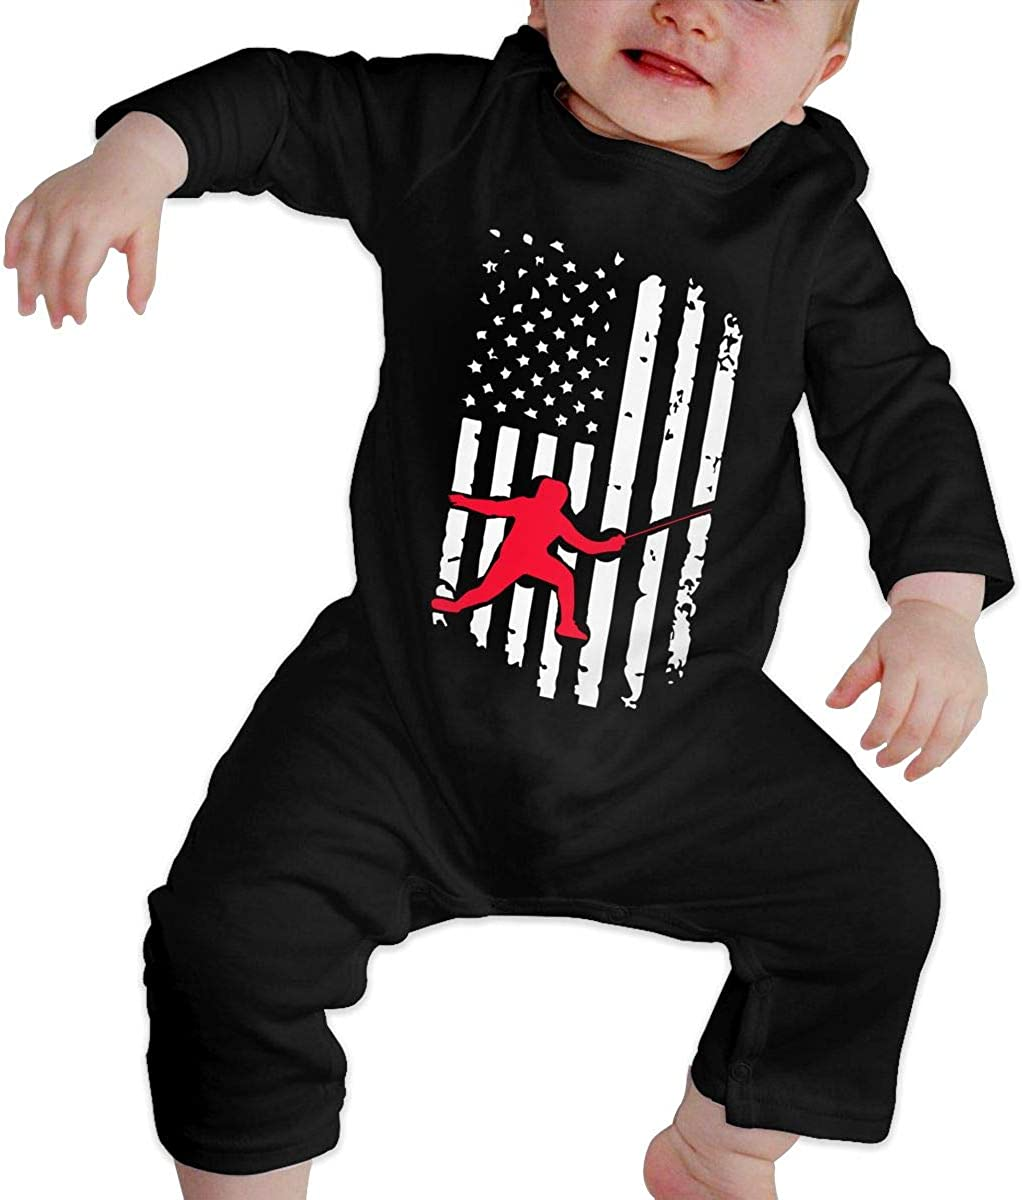 Fencing American Flag-1 Organic One-Piece Kid Pajamas Clothes BKNGDG8Q Unisex Baby Romper Jumpsuit